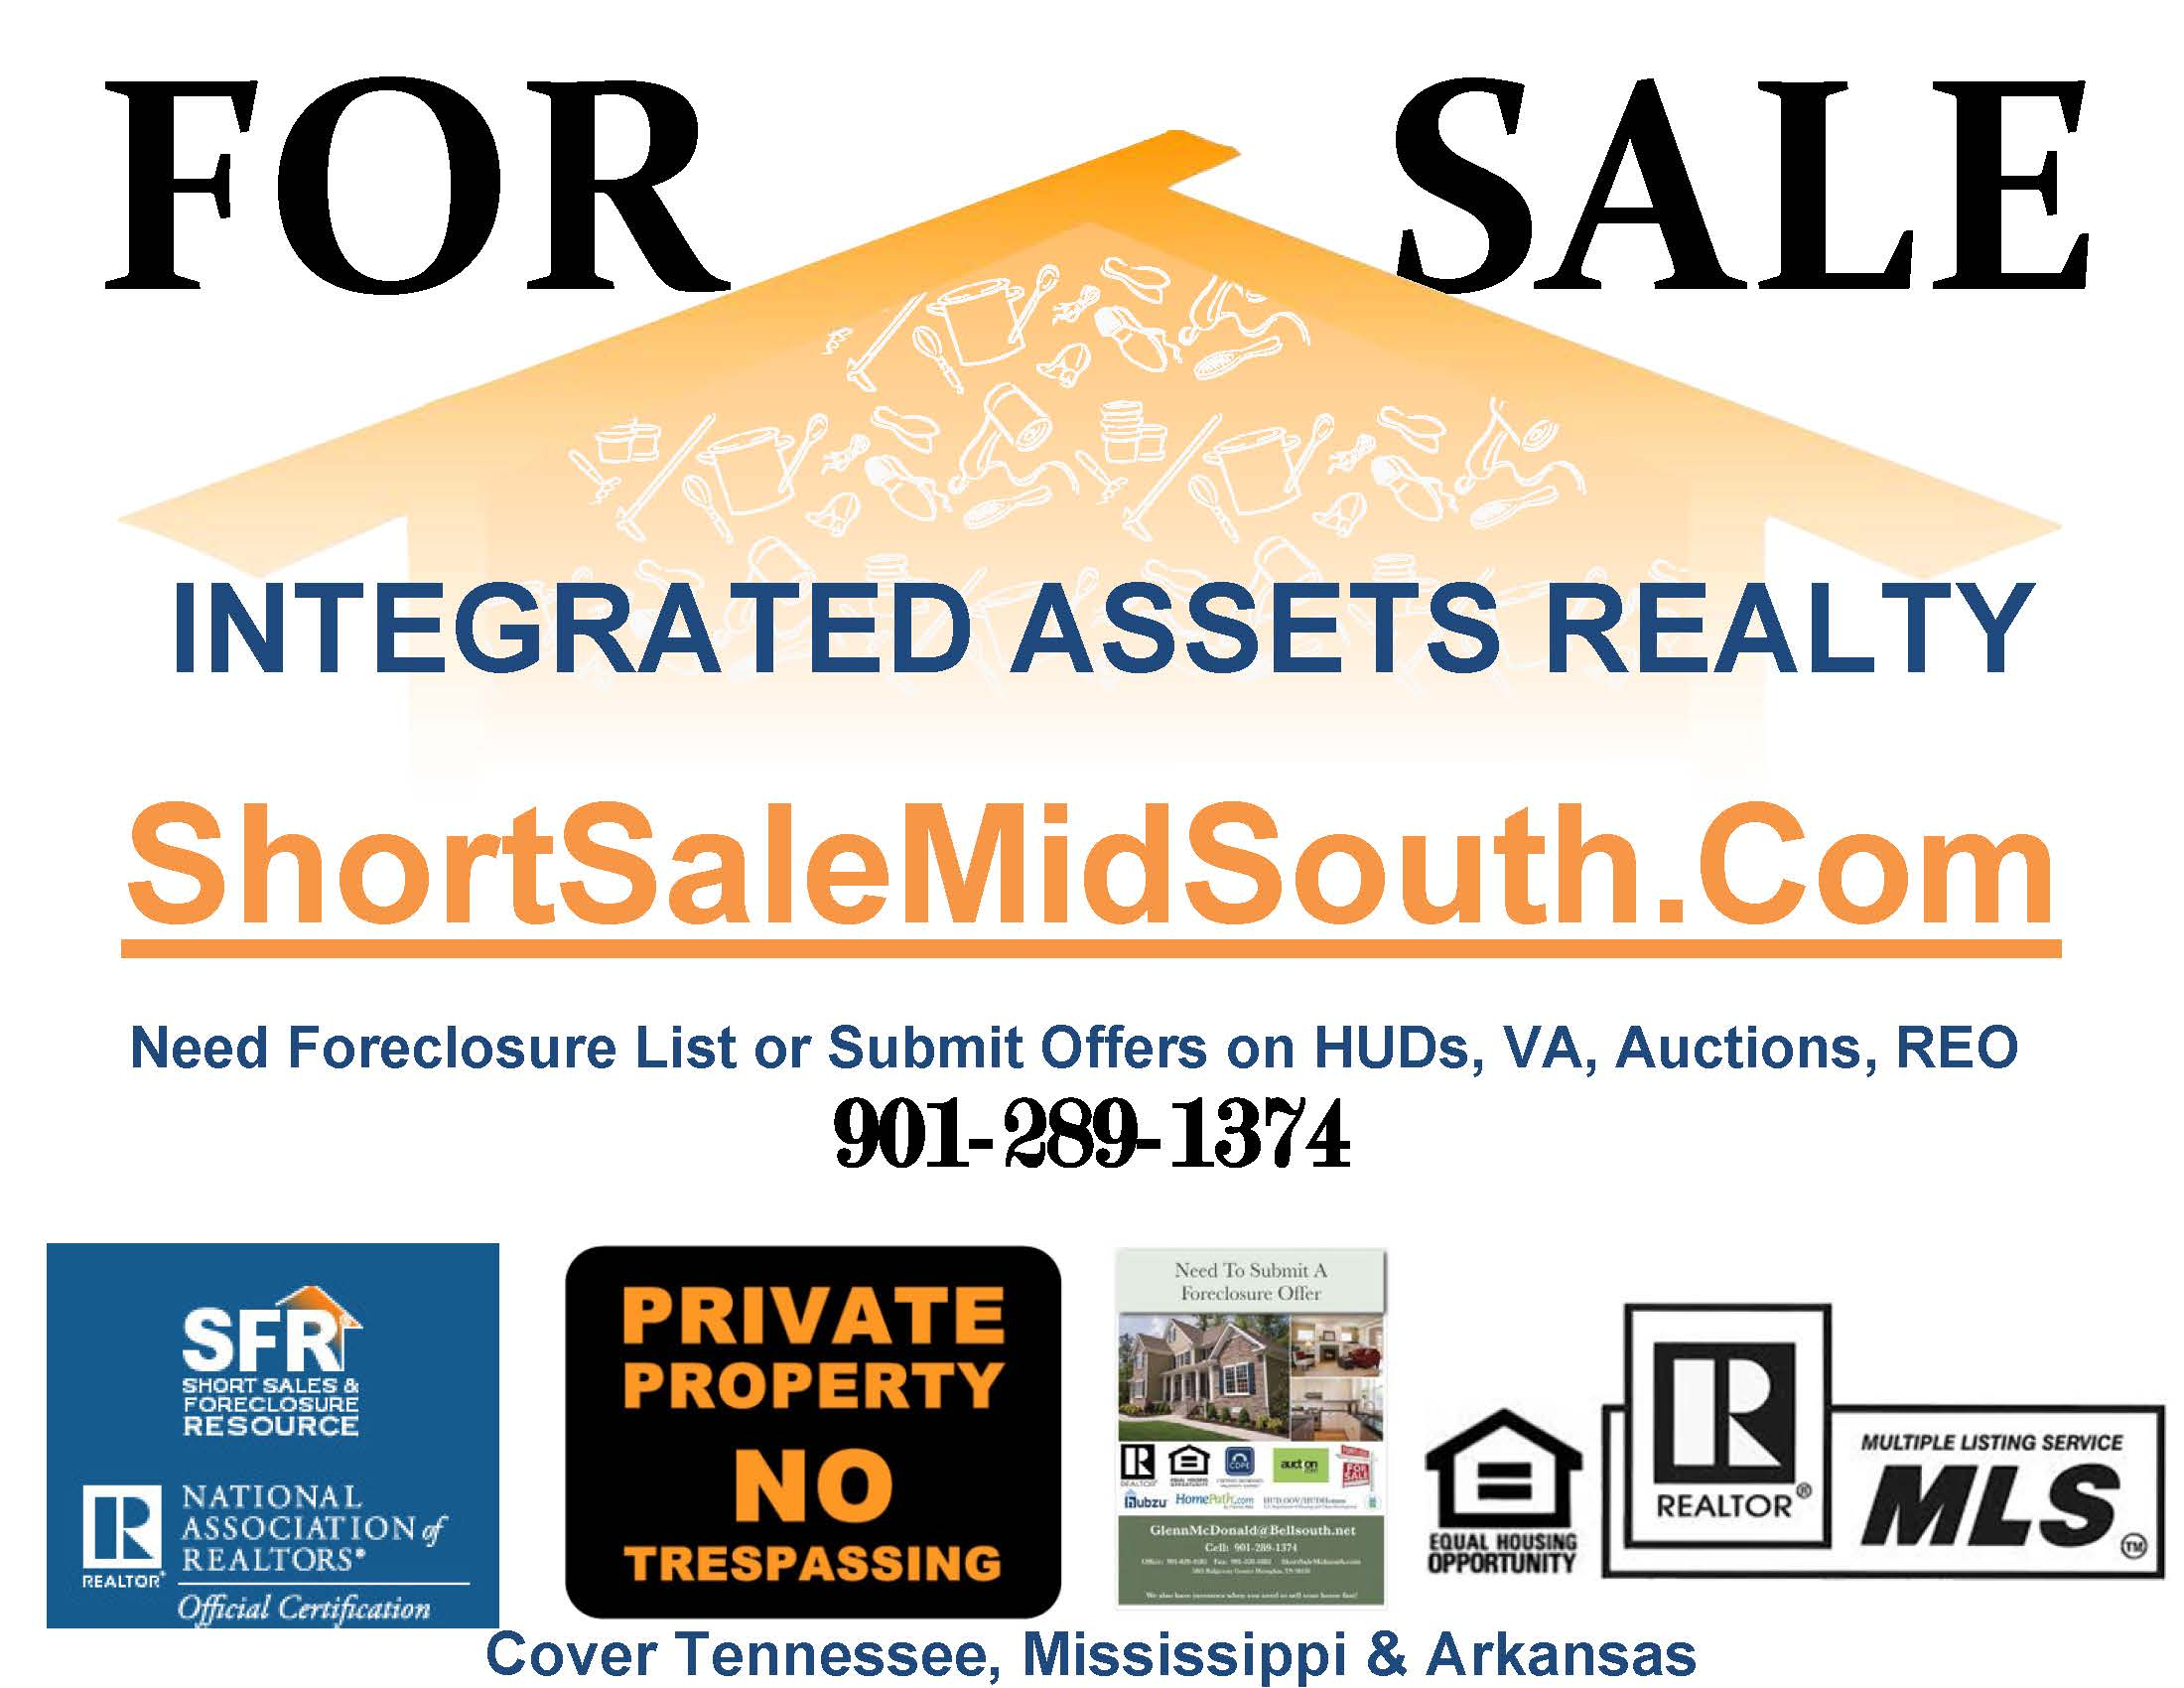 Integrated Assets Realty